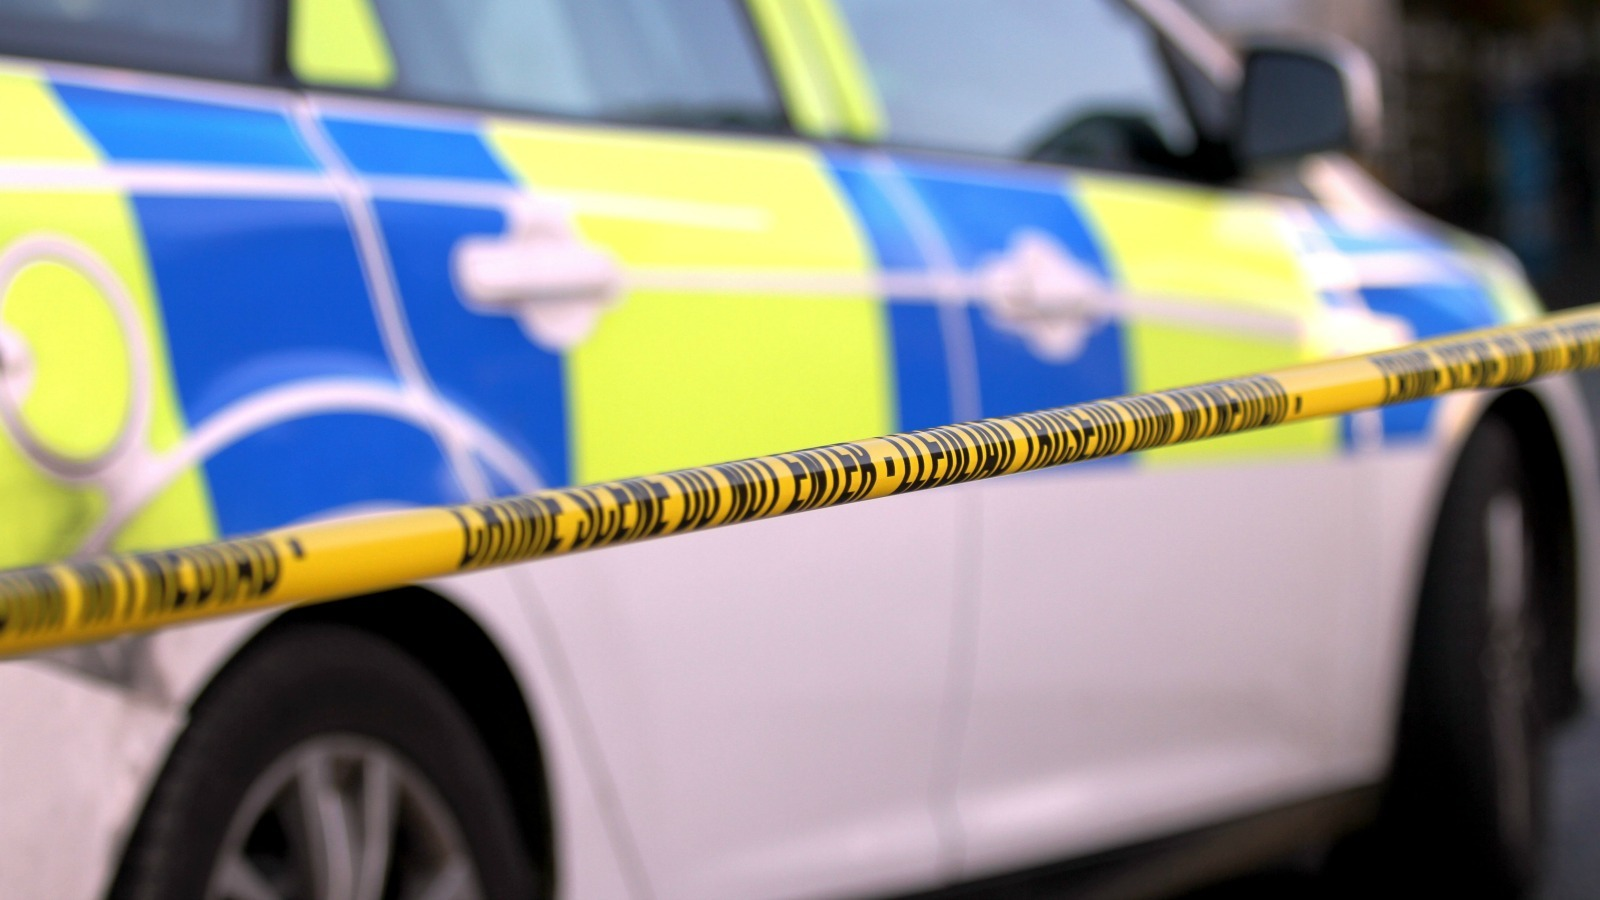 Chainsaws stolen in raid on shed and vehicle in Llandinam